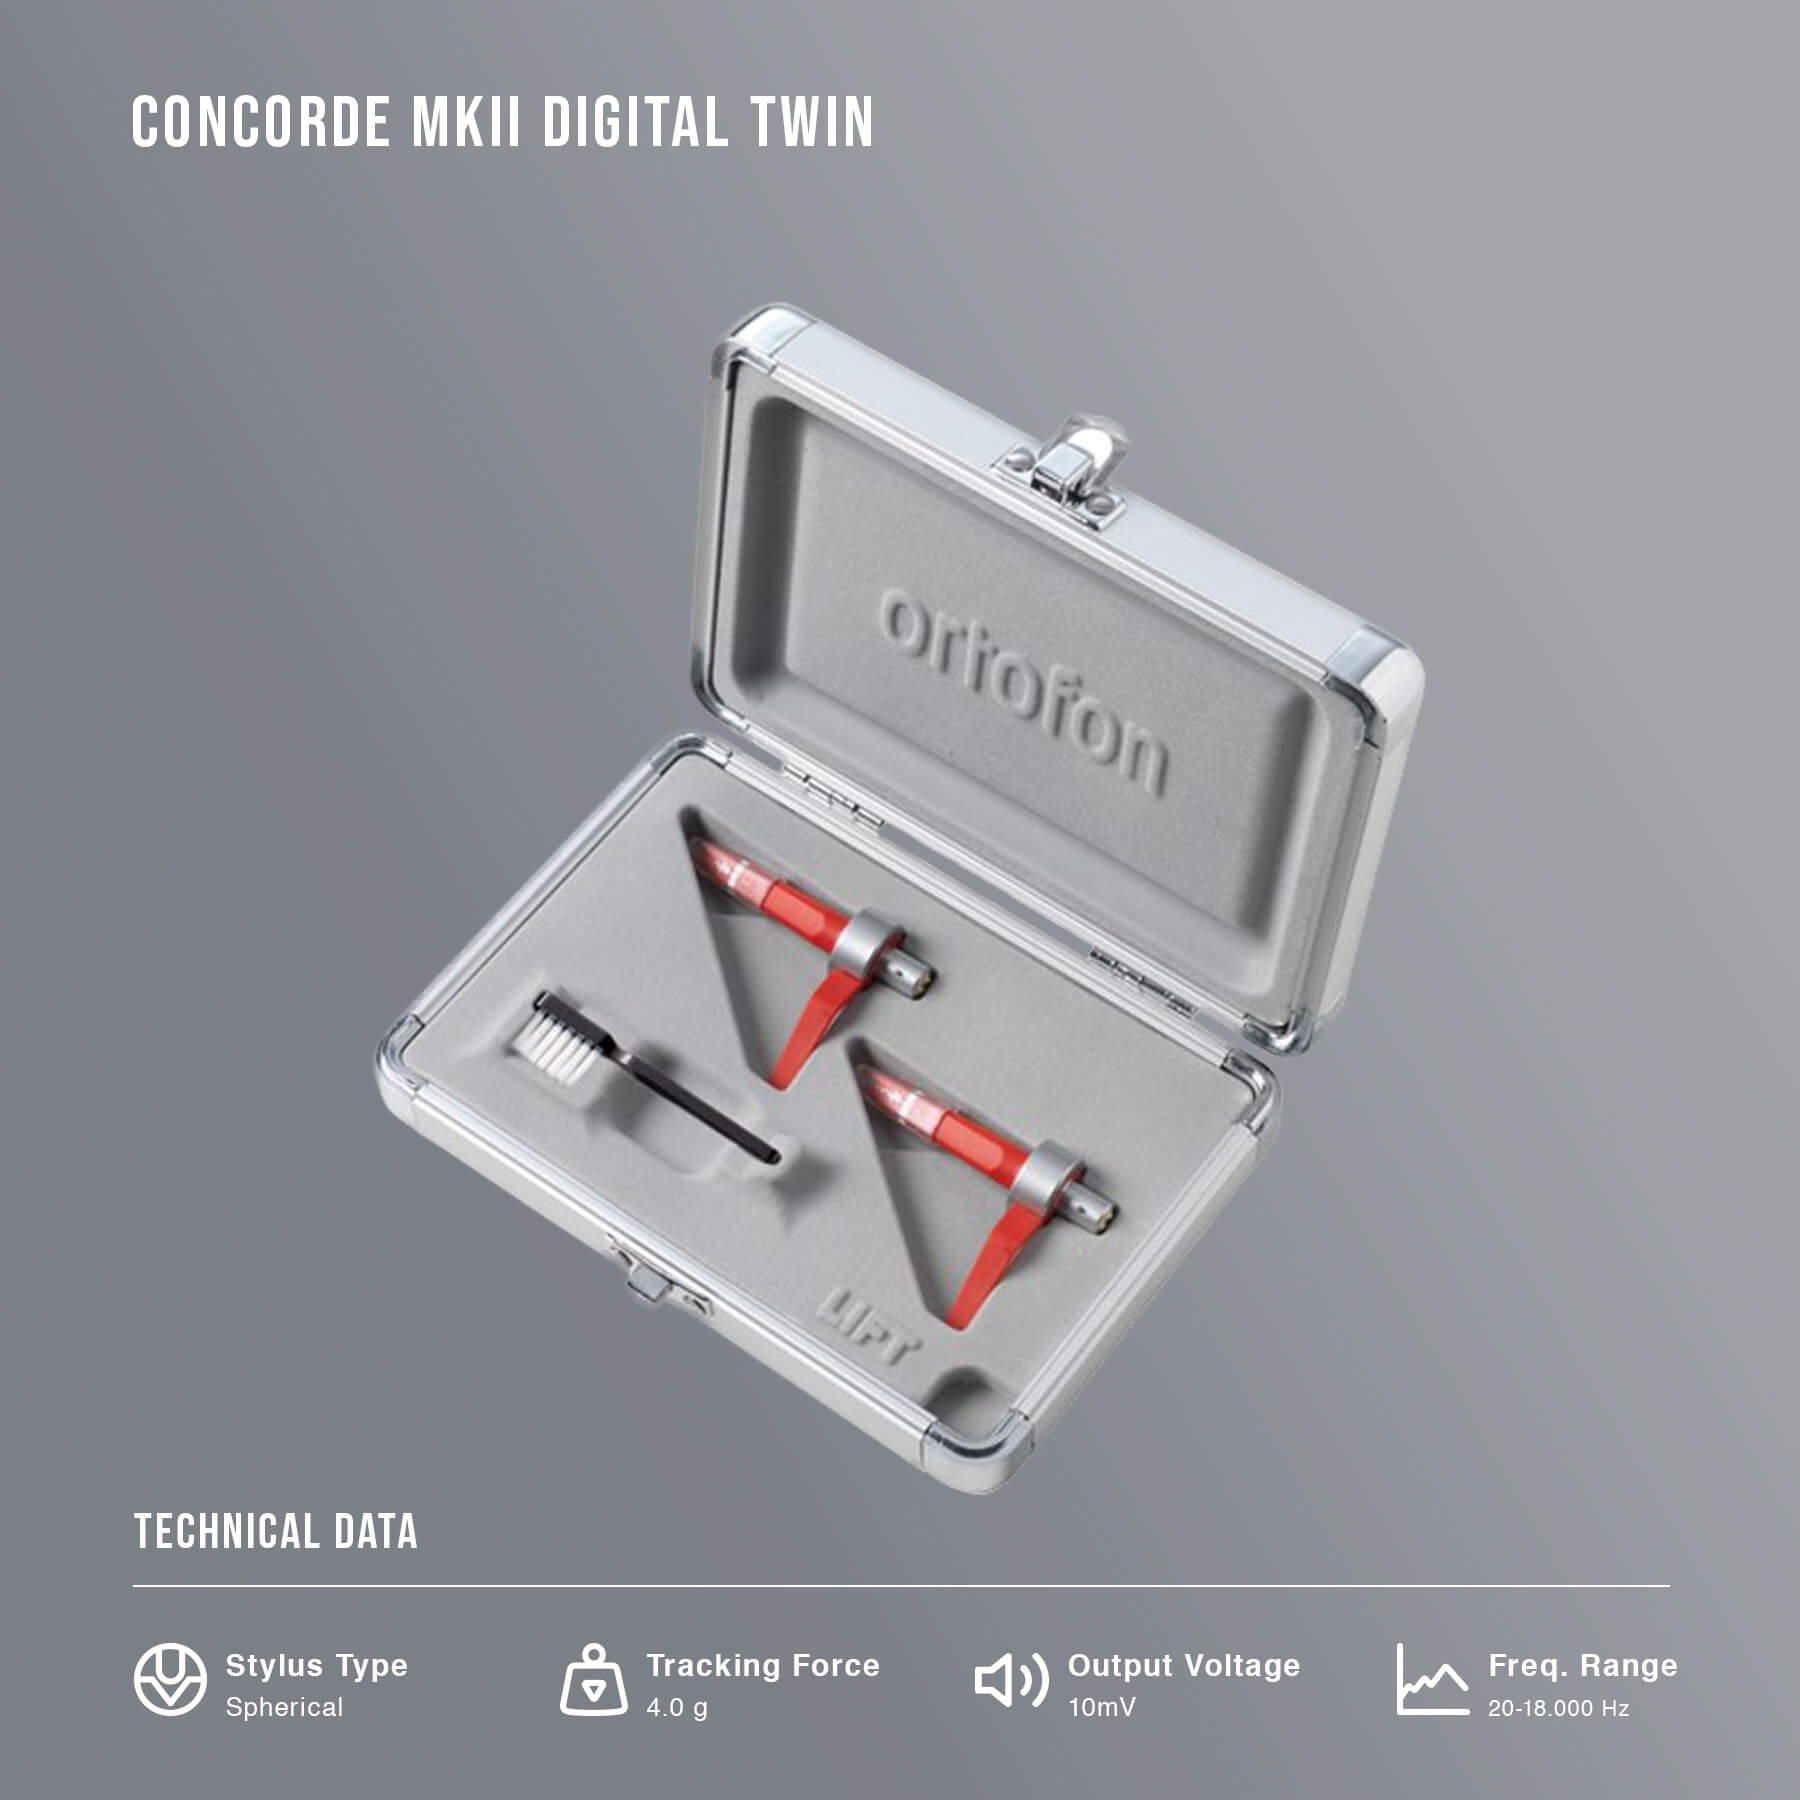 Concorde MkII Digital Twin